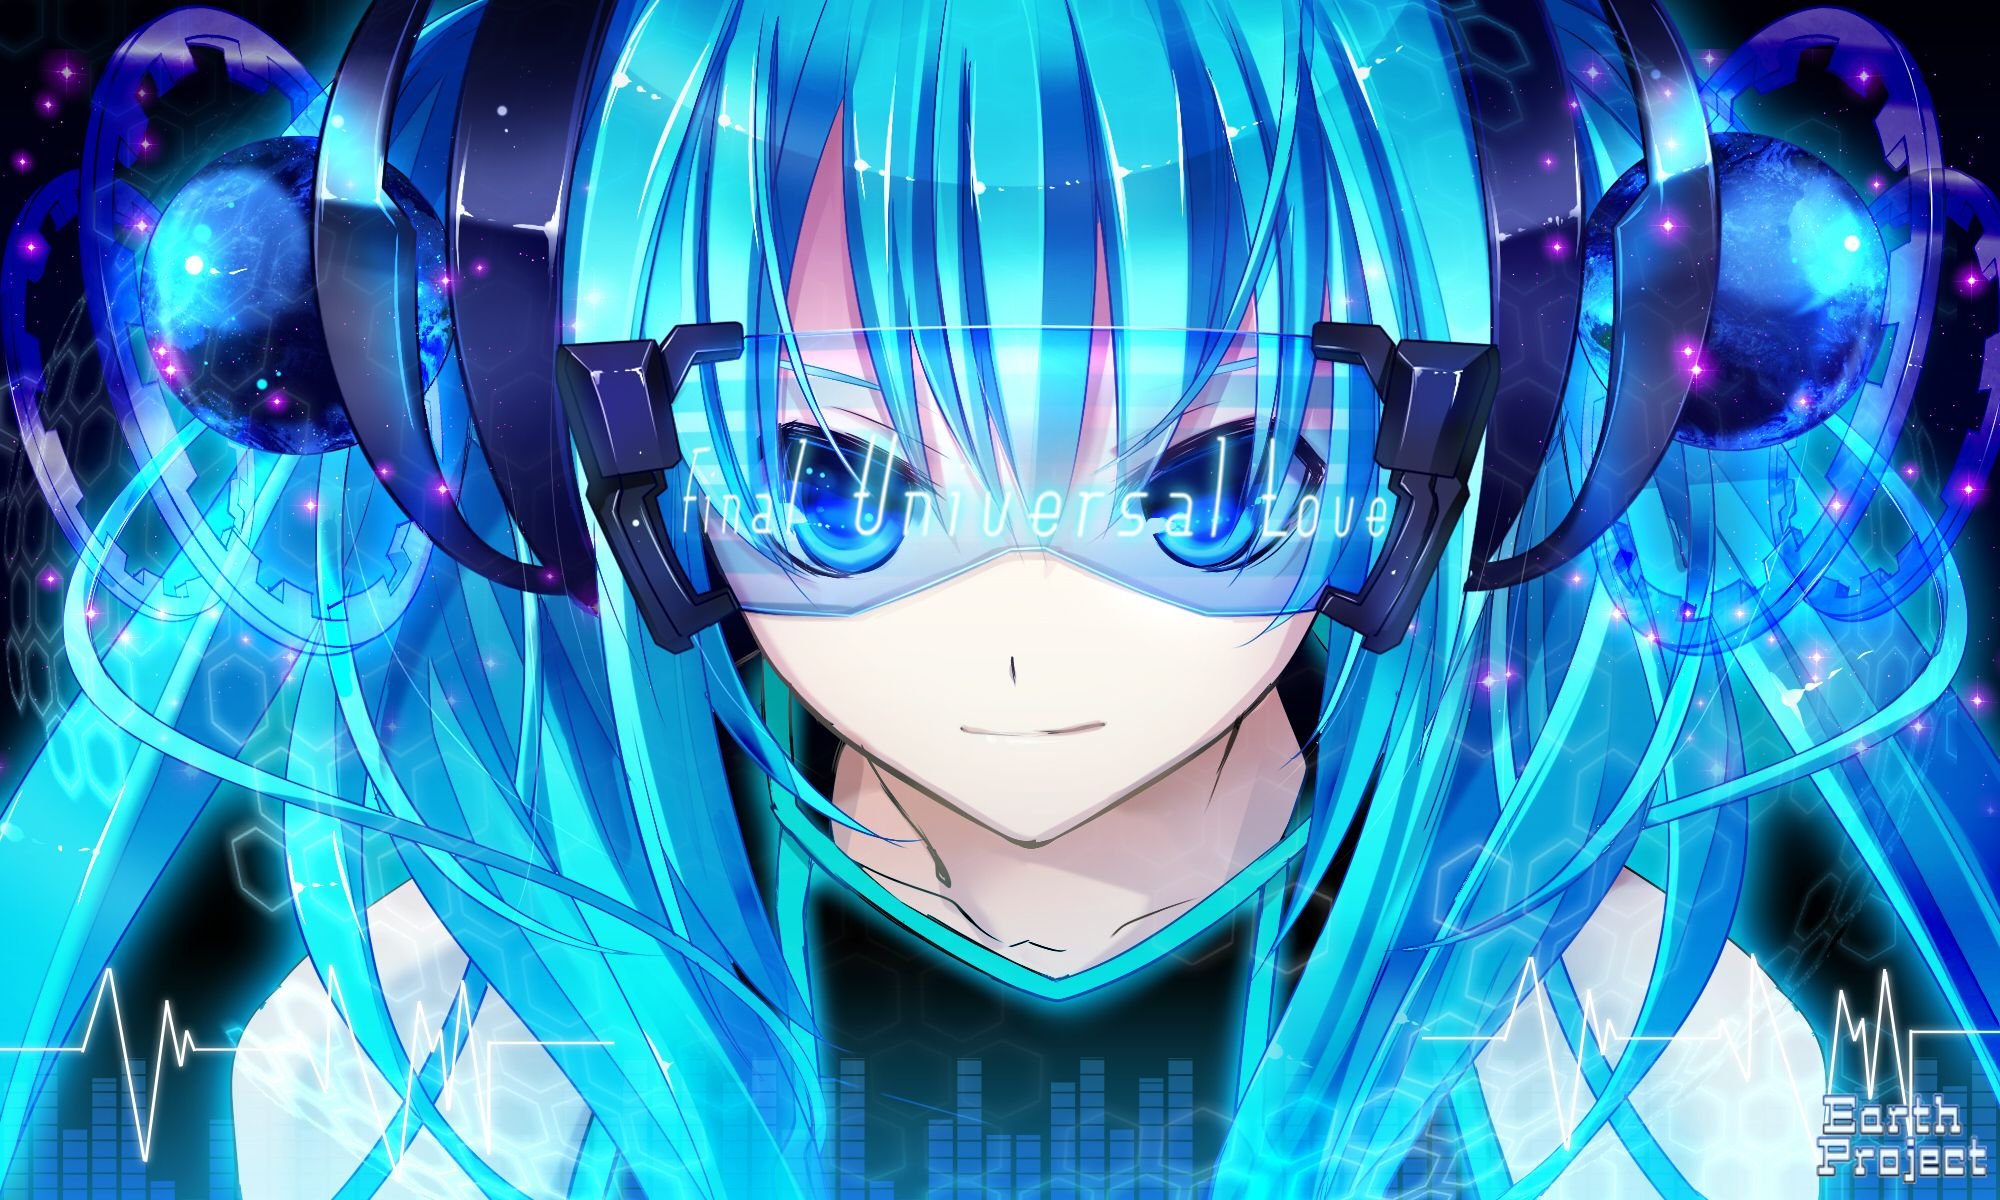 2000x1200 5955 Hatsune Miku HD Wallpapers | Background Images - Wallpaper Abyss